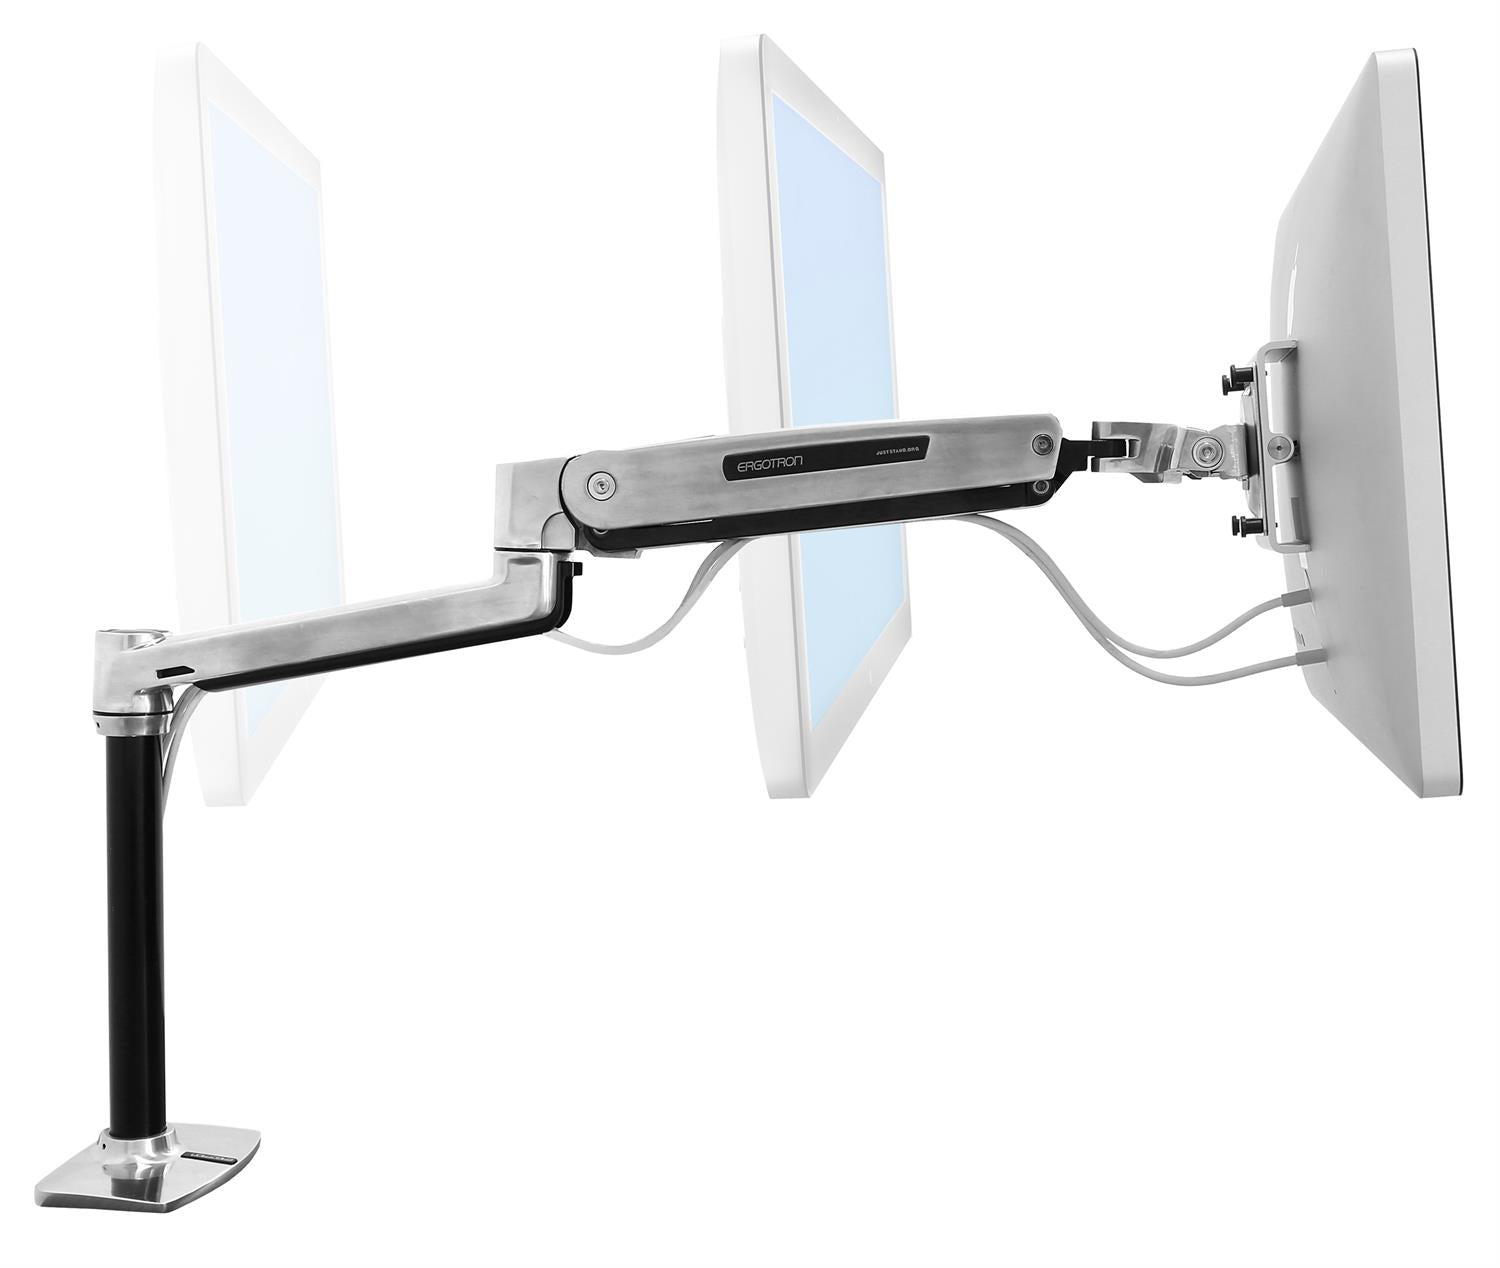 New Ergotron Lx Hd Sit Stand Desk Mount Monitor Arm Ebay